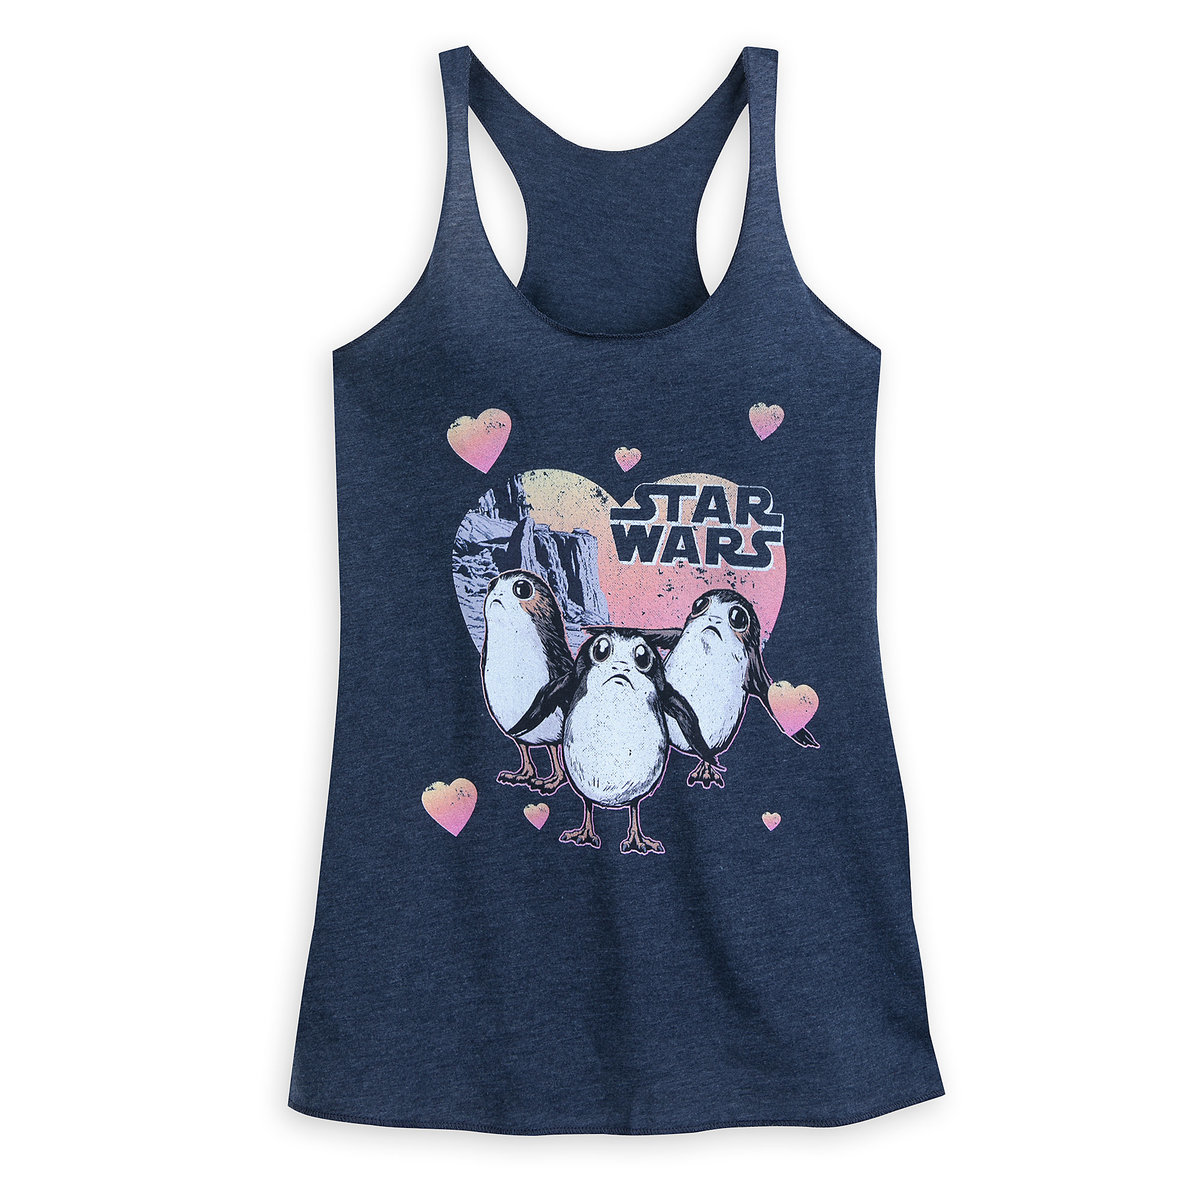 53a07857eda64 Product Image of Porg Tank Top for Women - Star Wars   1